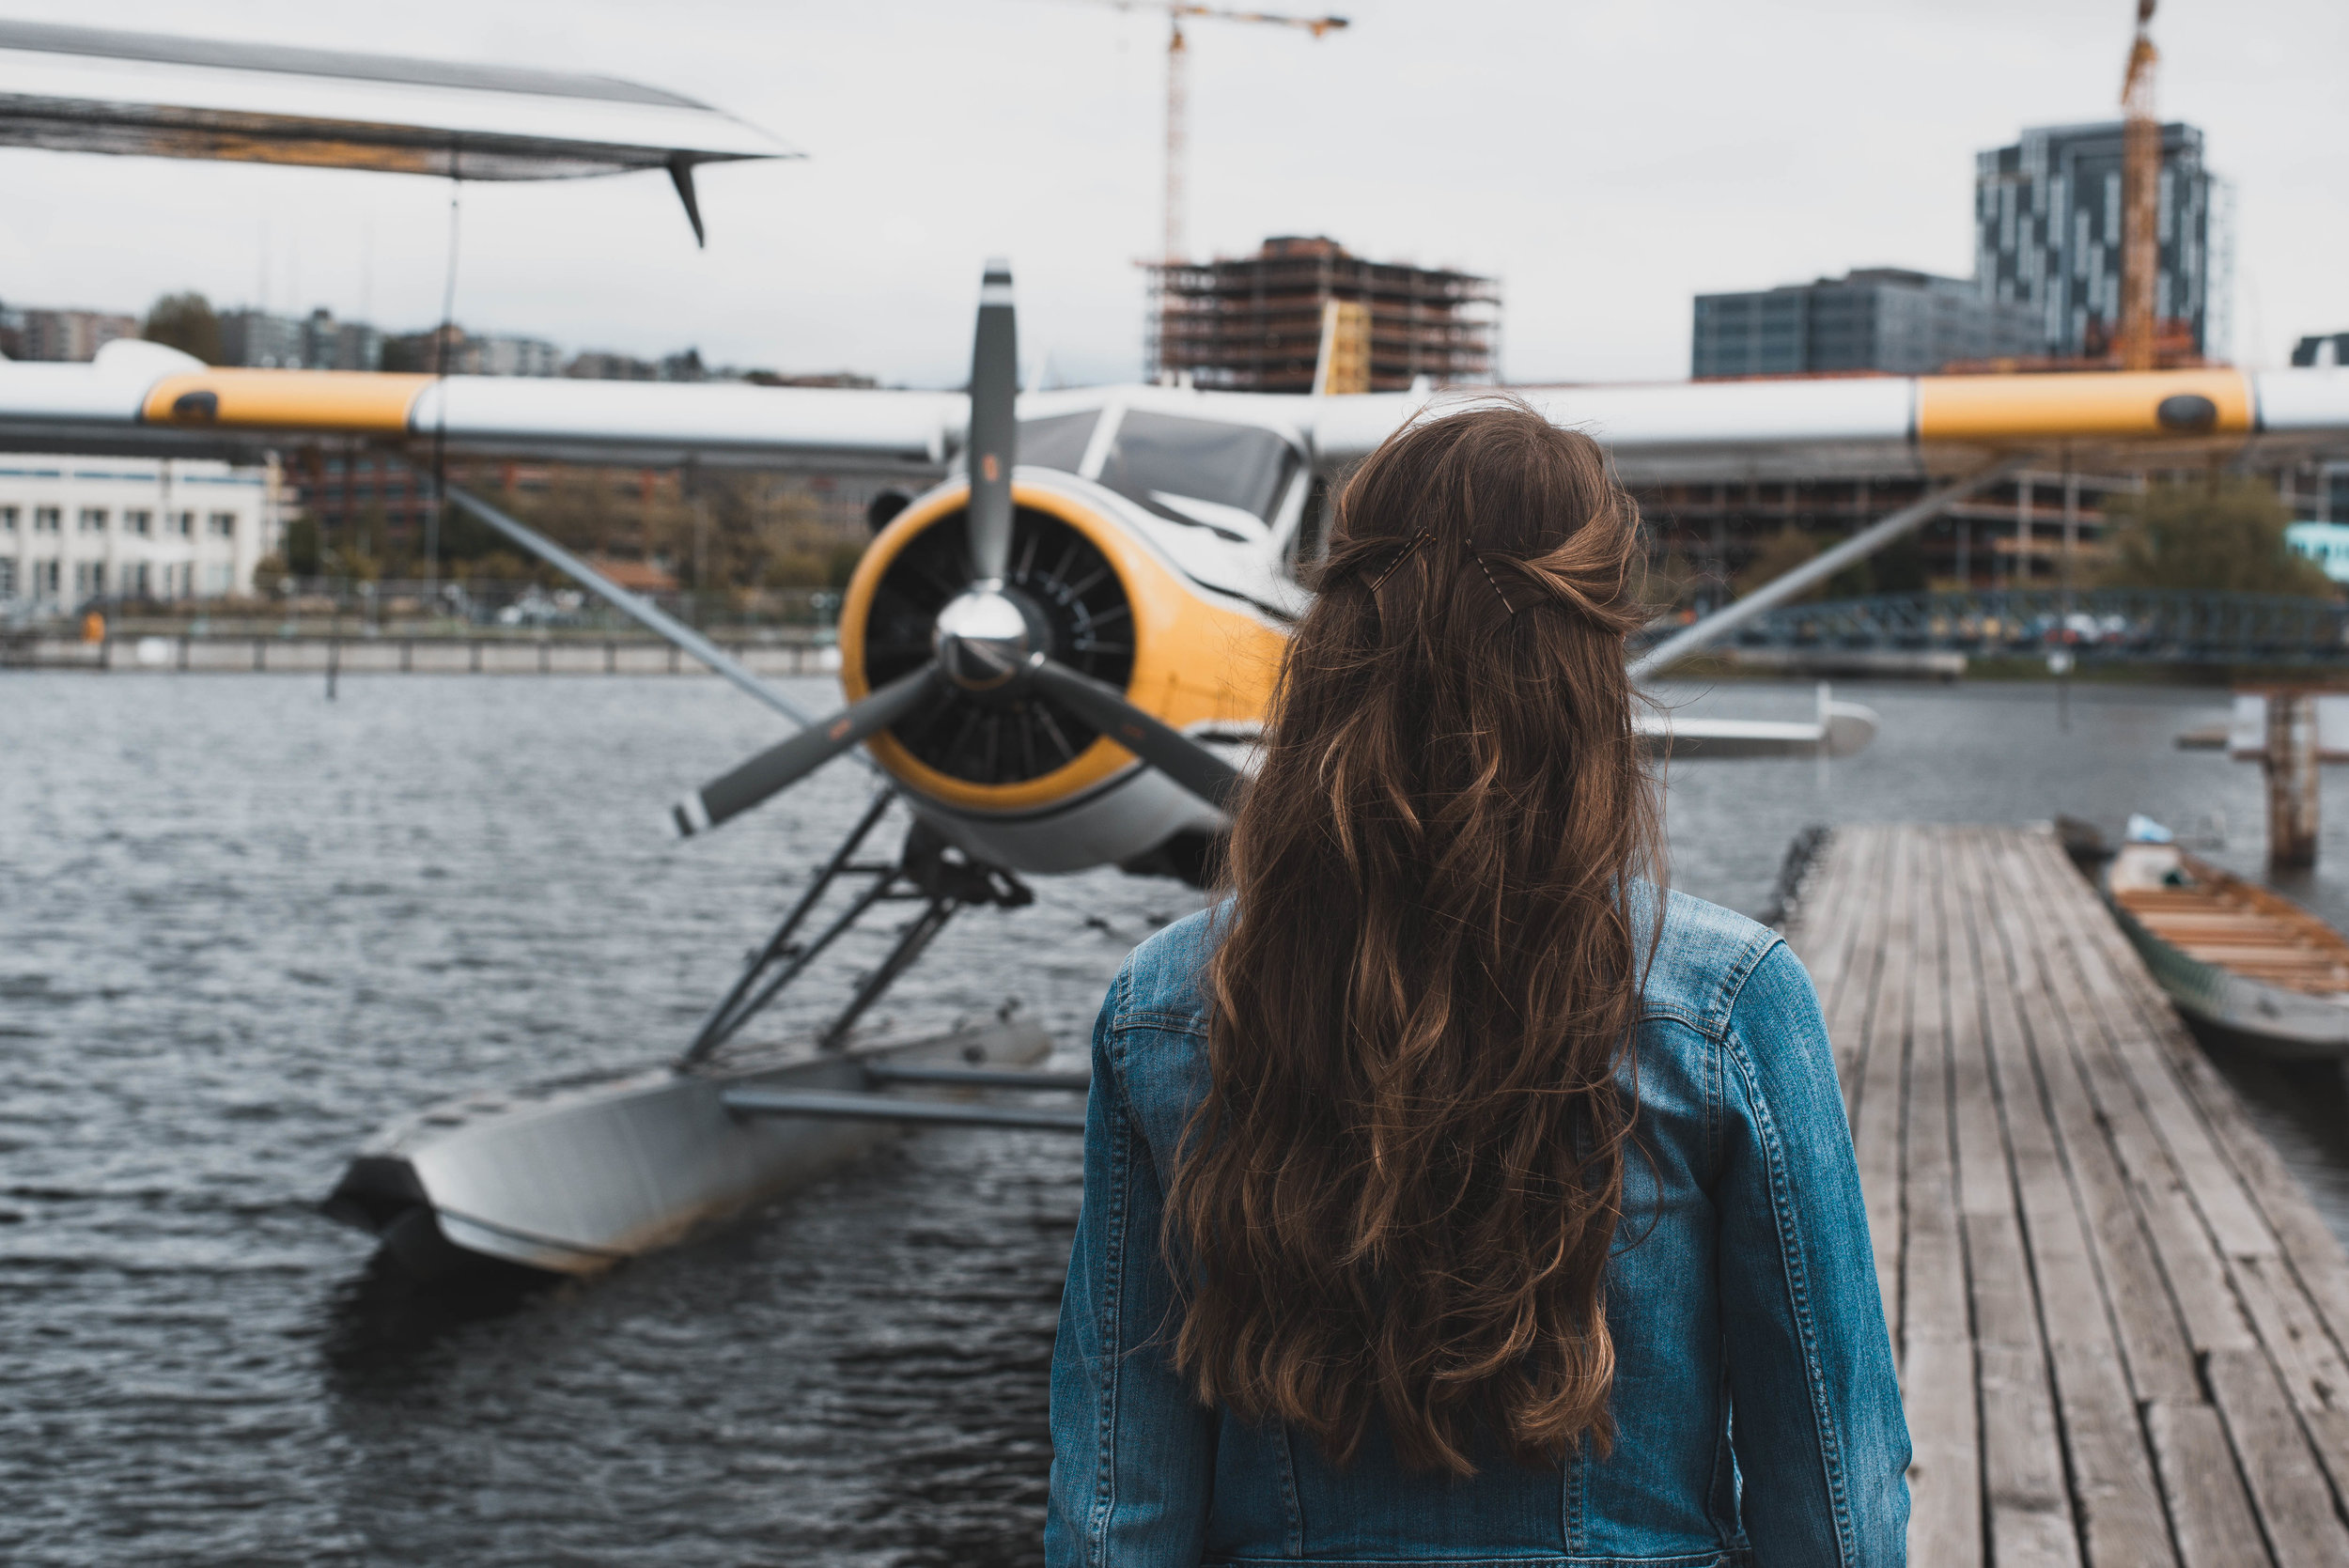 Visiting Victoria was the perfect excuse to ride in a seaplane!